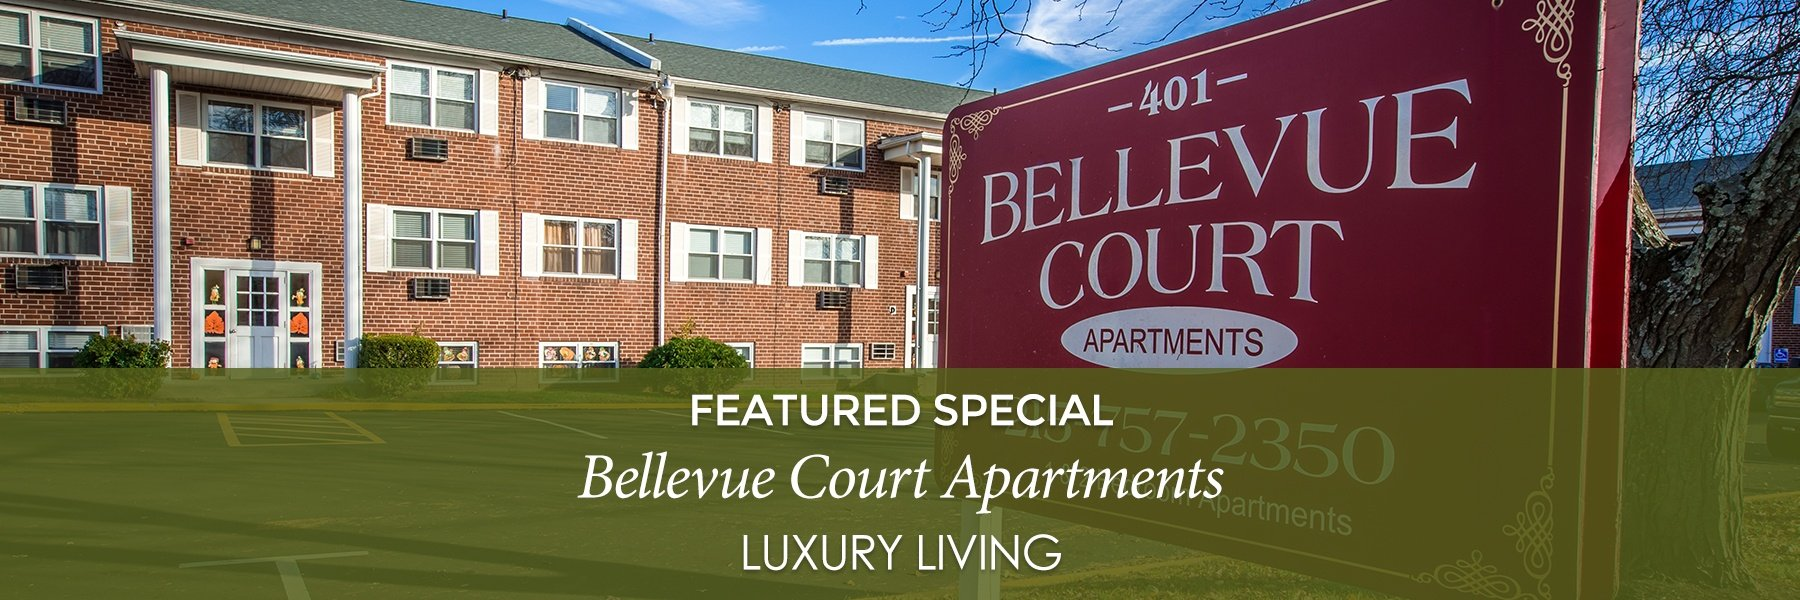 Bellevue Court Apartments For Rent in Penndel, PA Specials